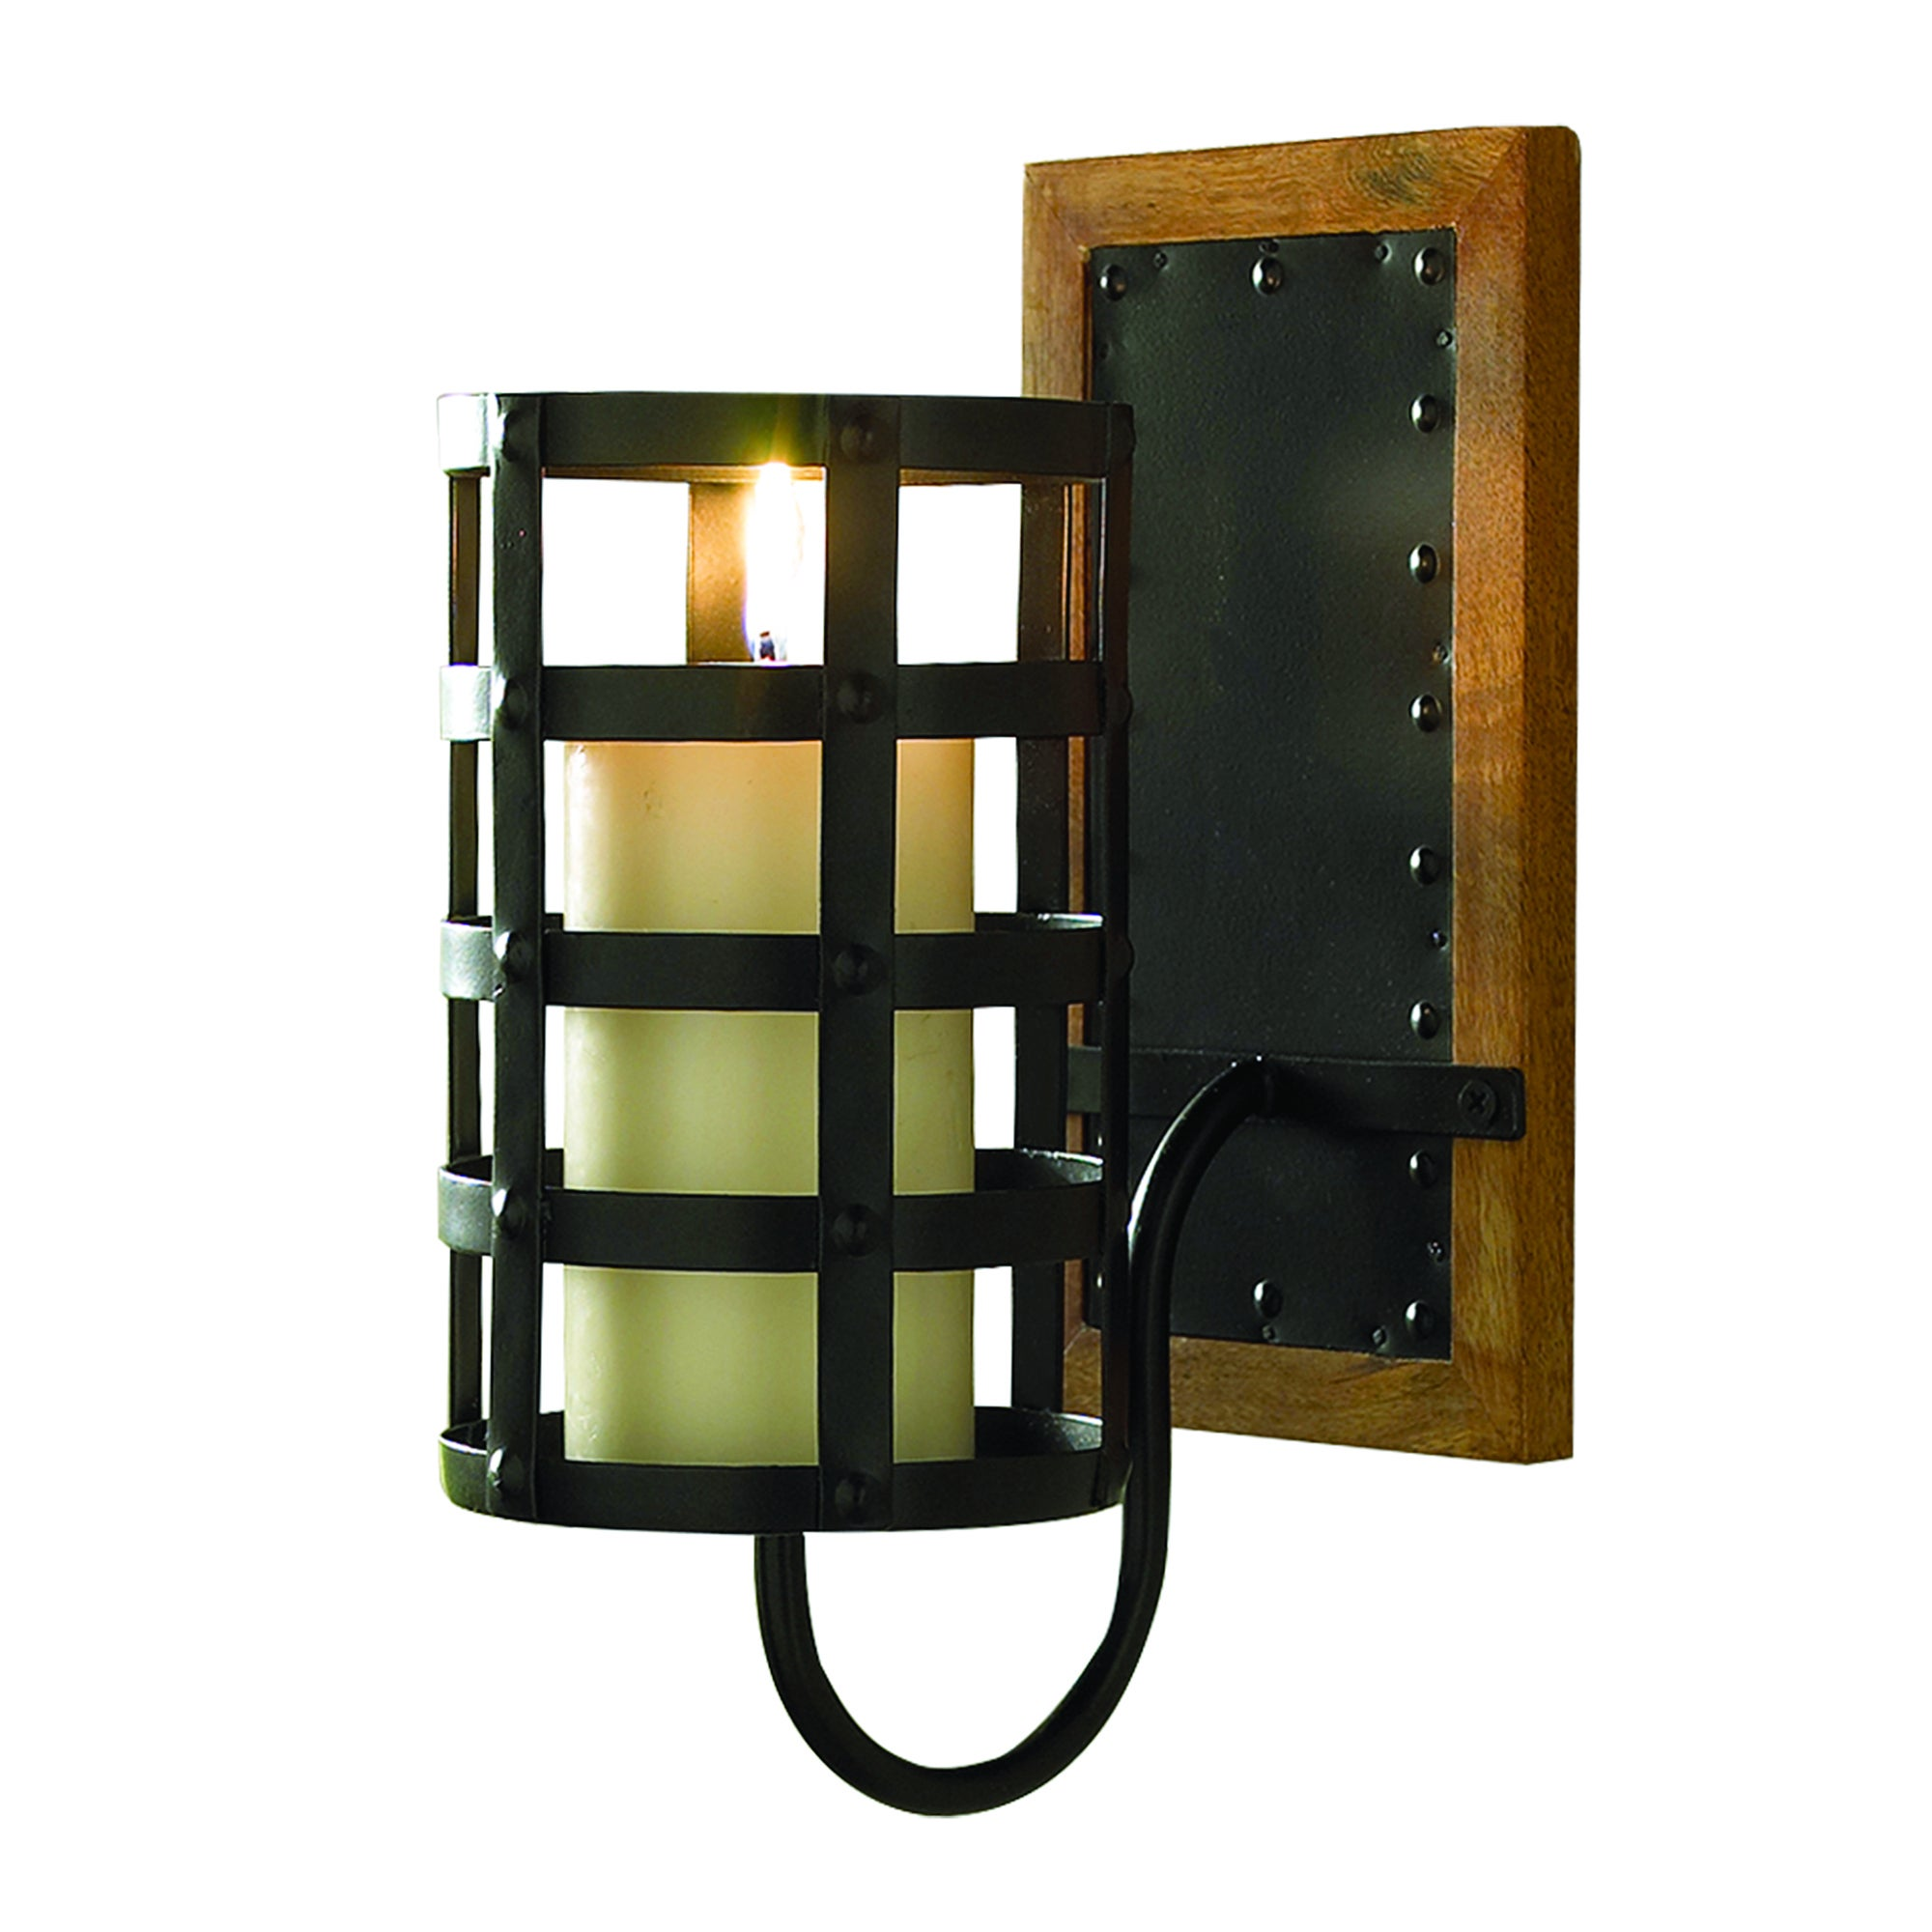 fixtures furniture sconces design single decor interior home inspiring awesome candle sconce wrought iron wall